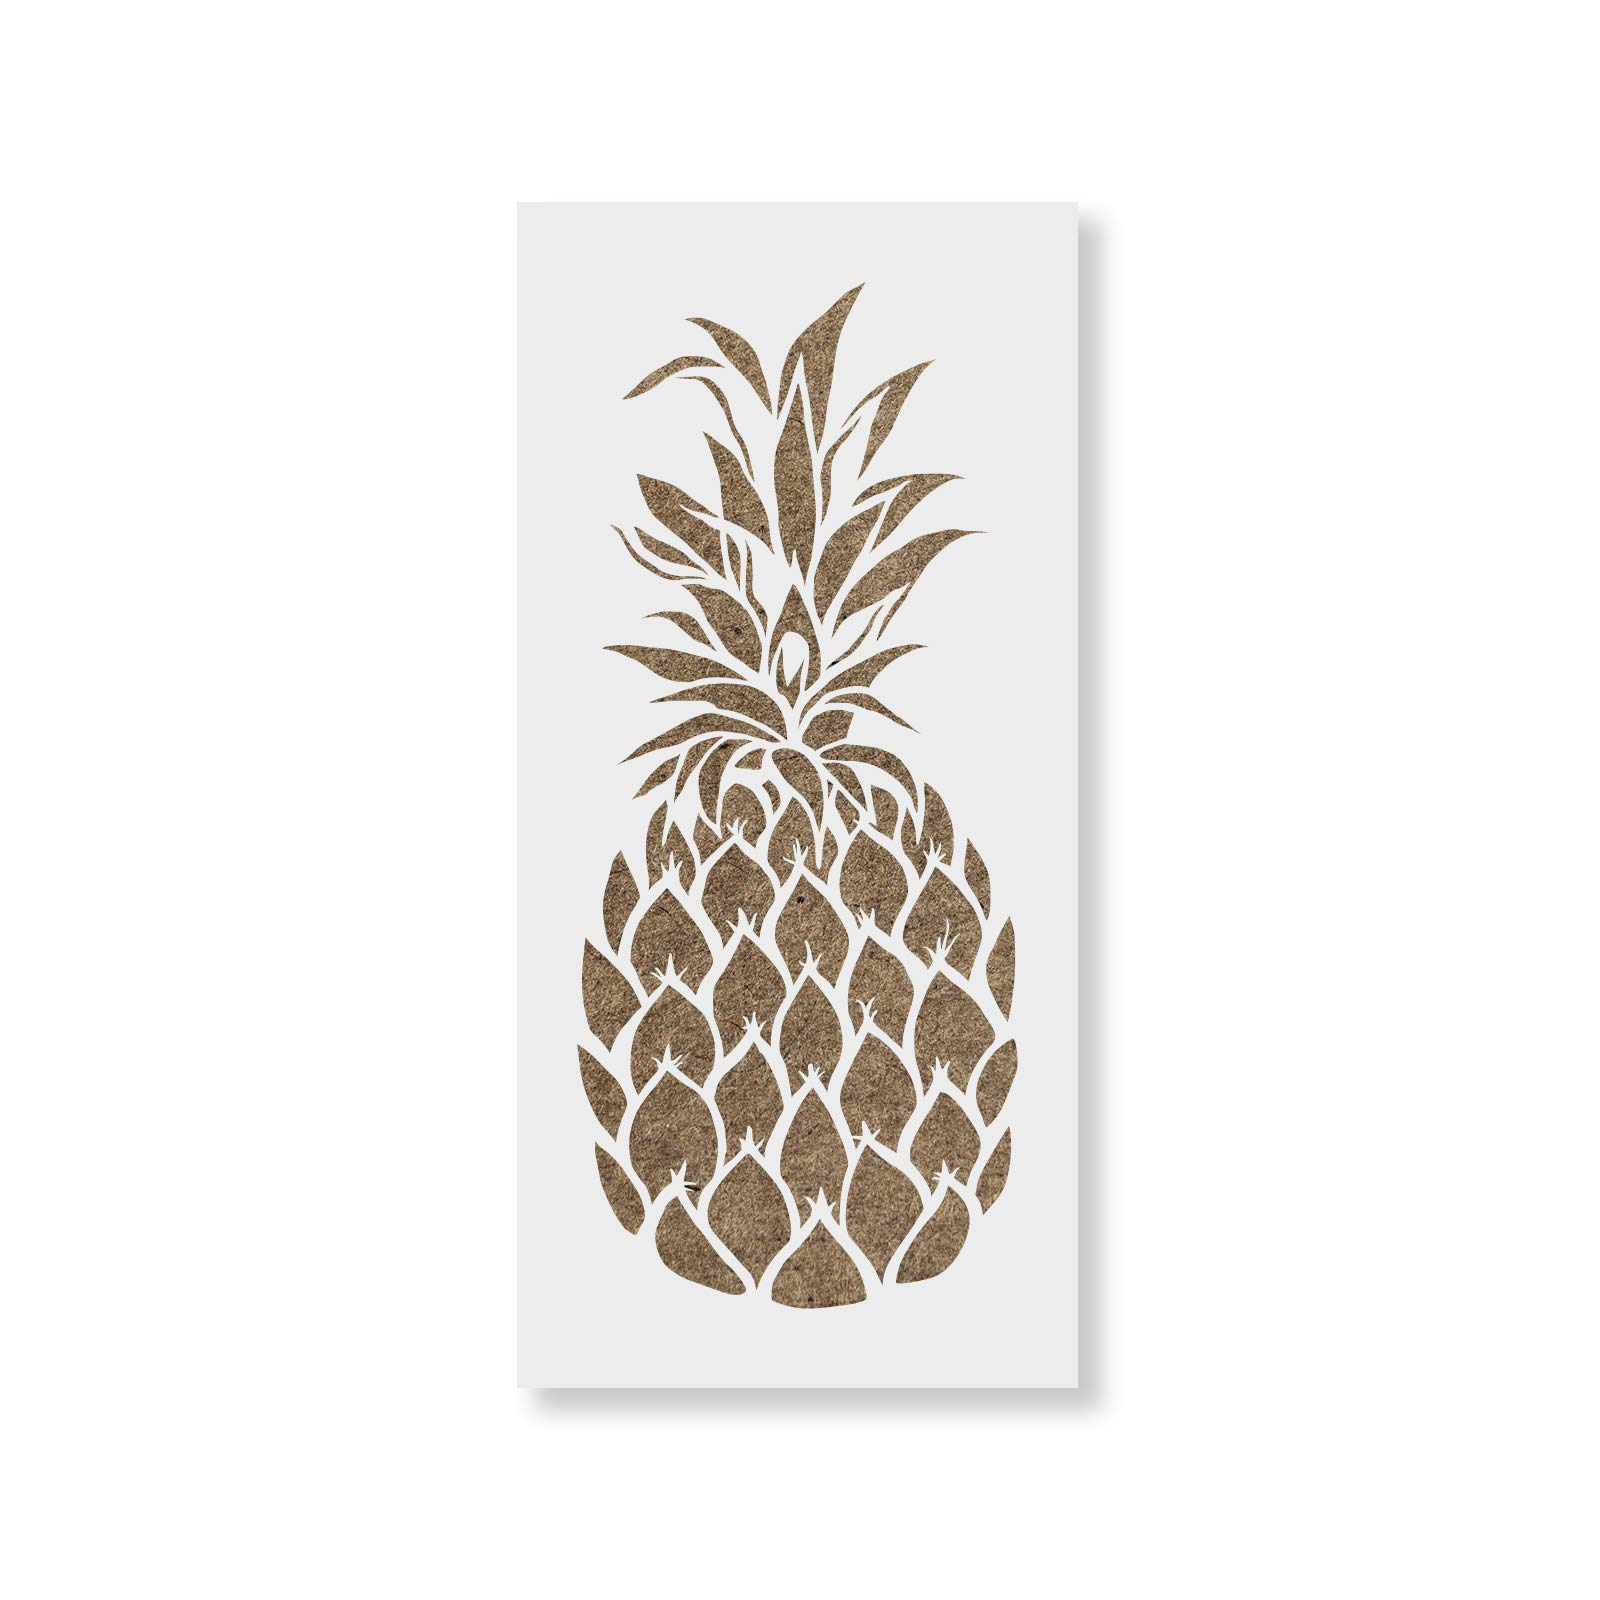 Pineapple Stencil Template for Walls and Crafts - Reusable Stencils for Painting in Small & Large Sizes